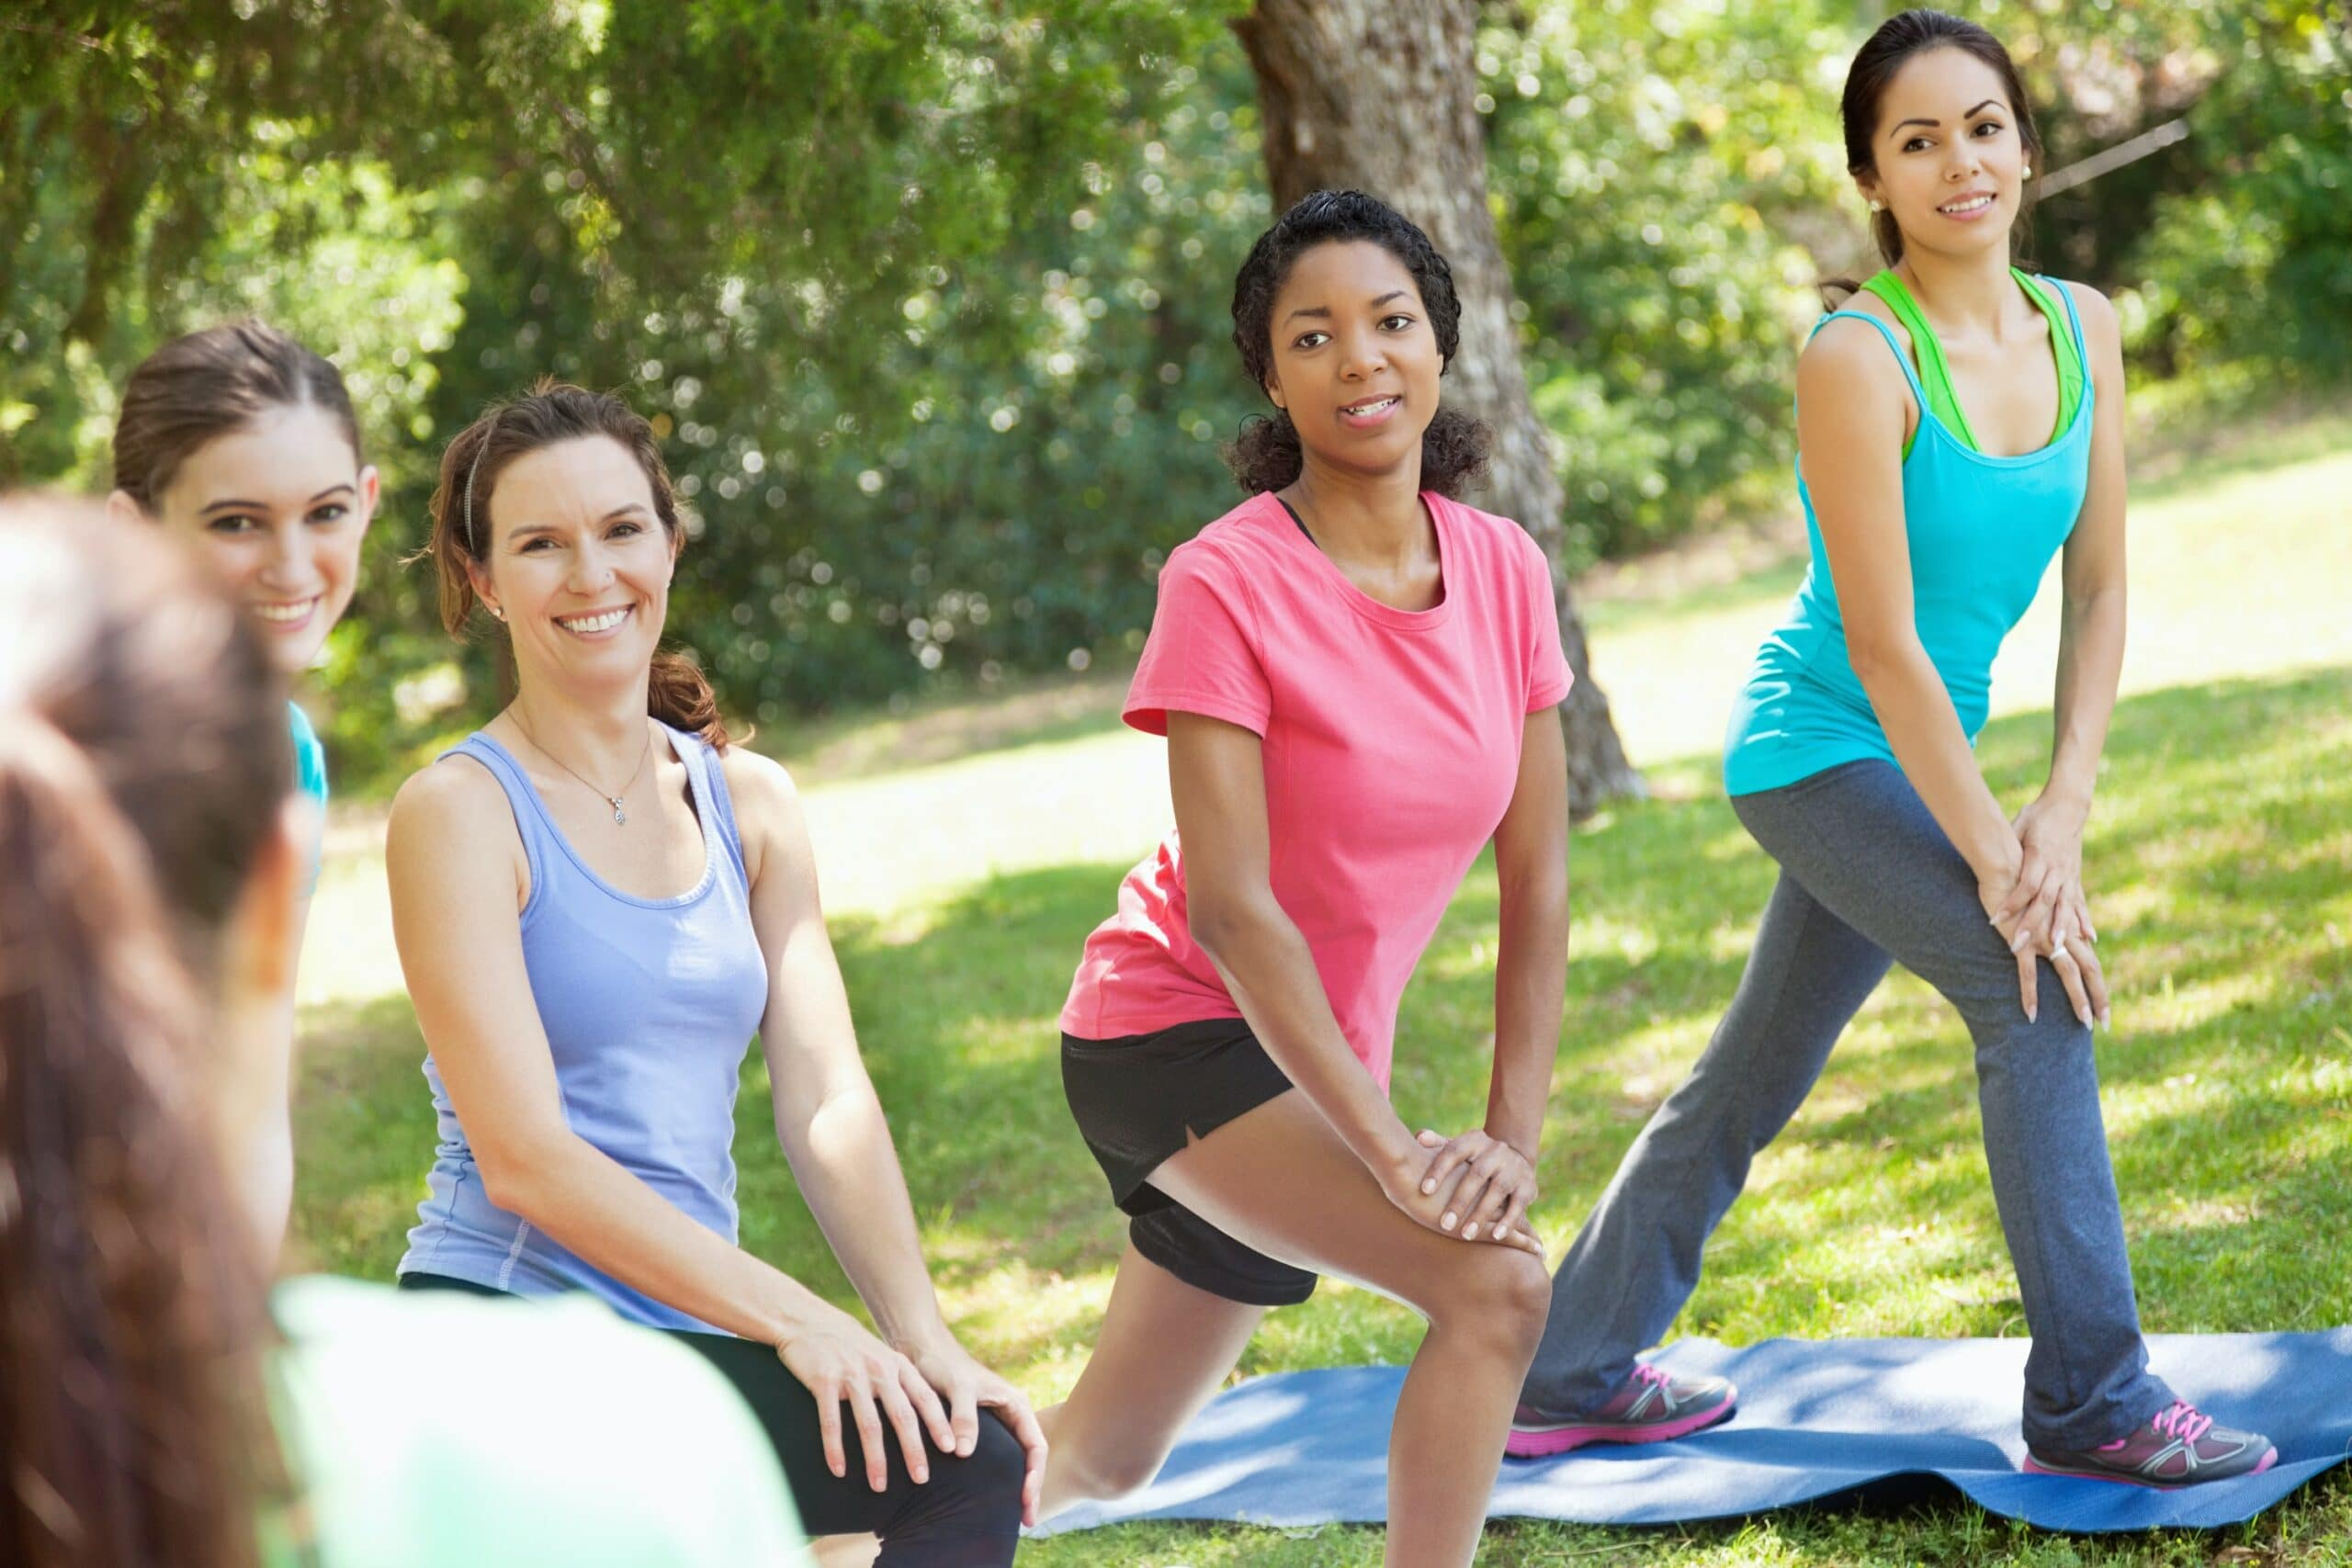 women working out outdoors